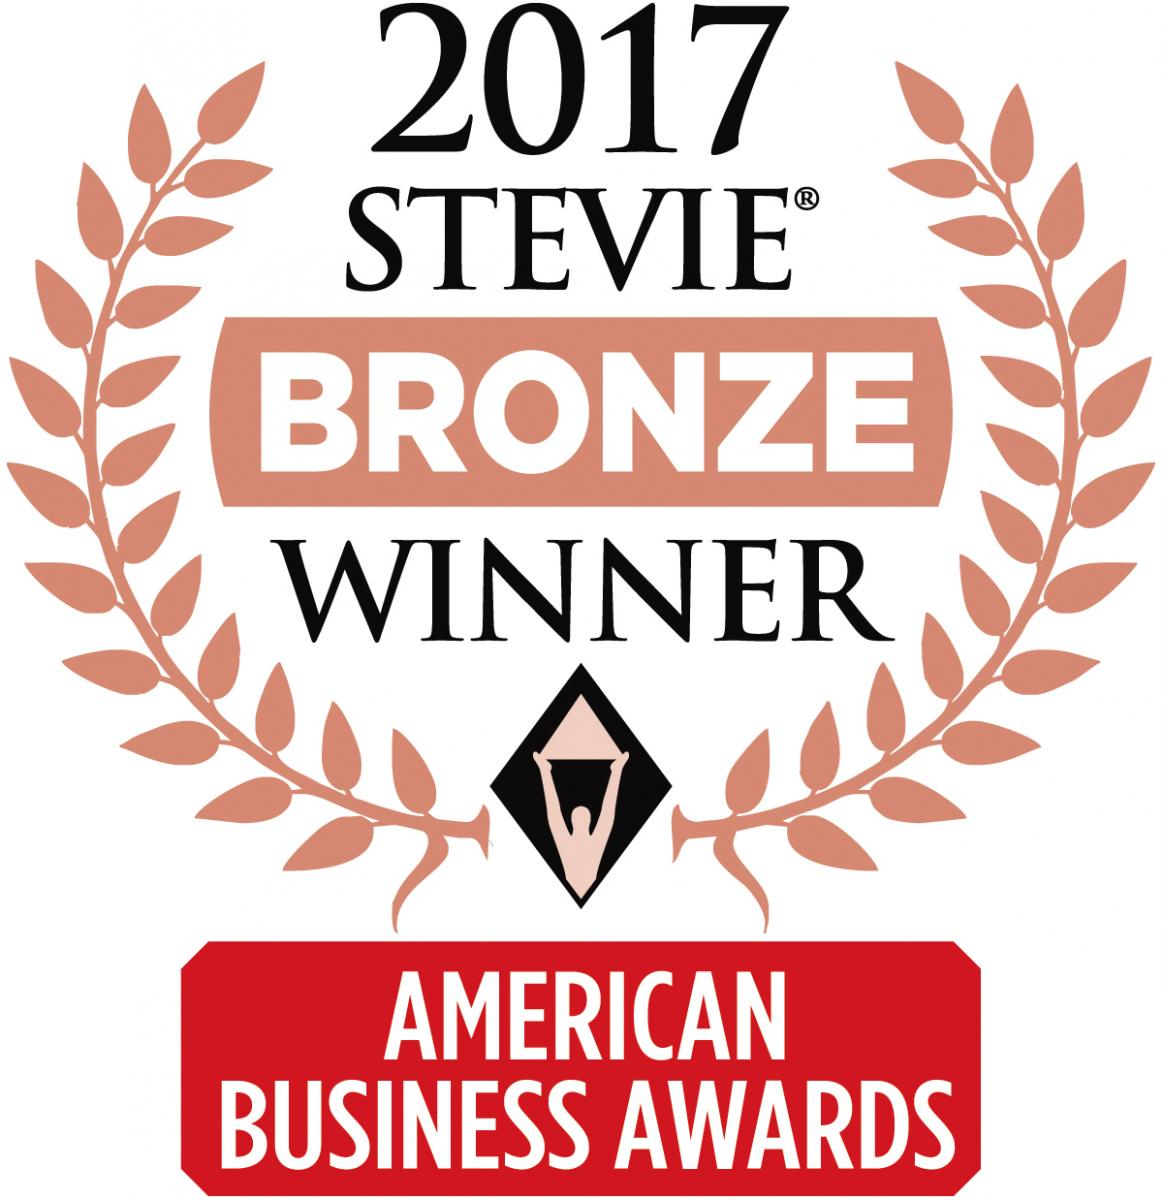 2017 Bronze Stevie Winner of American Business Awards